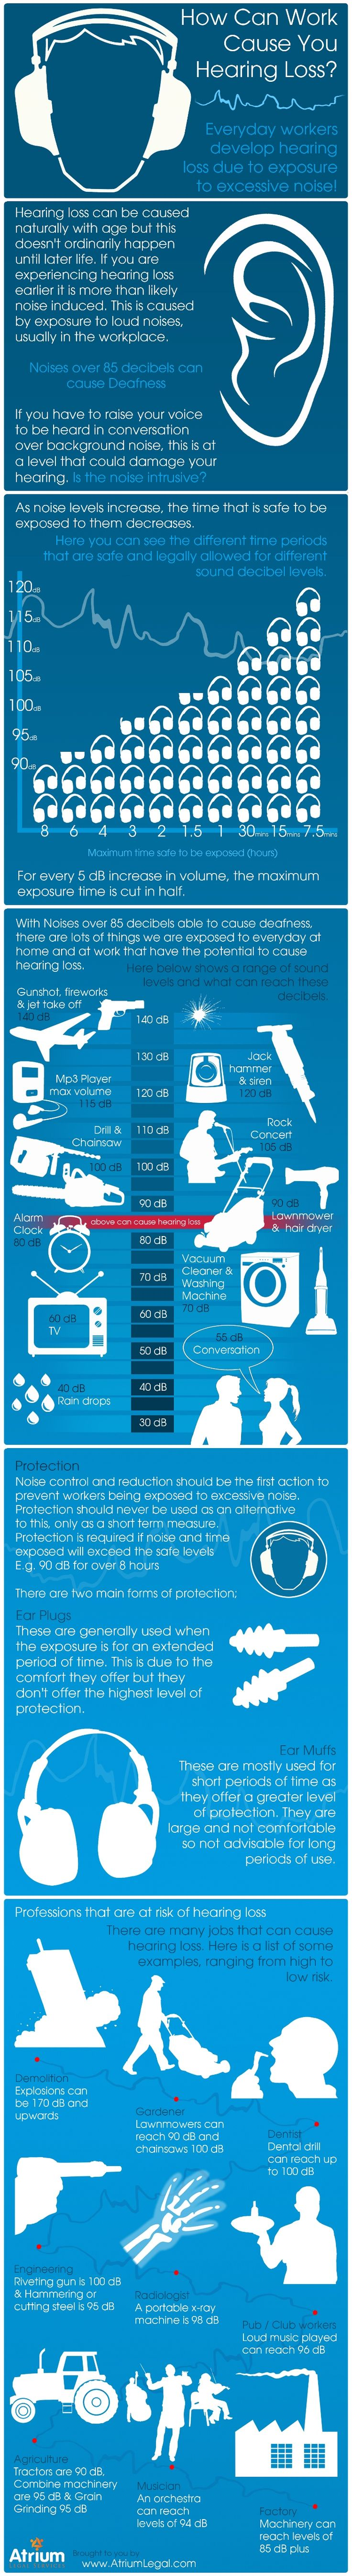 Could your job be causing you hearing loss? #hearingloss #infographic  http://www.soundproofcow.com/Soundproofing-101/